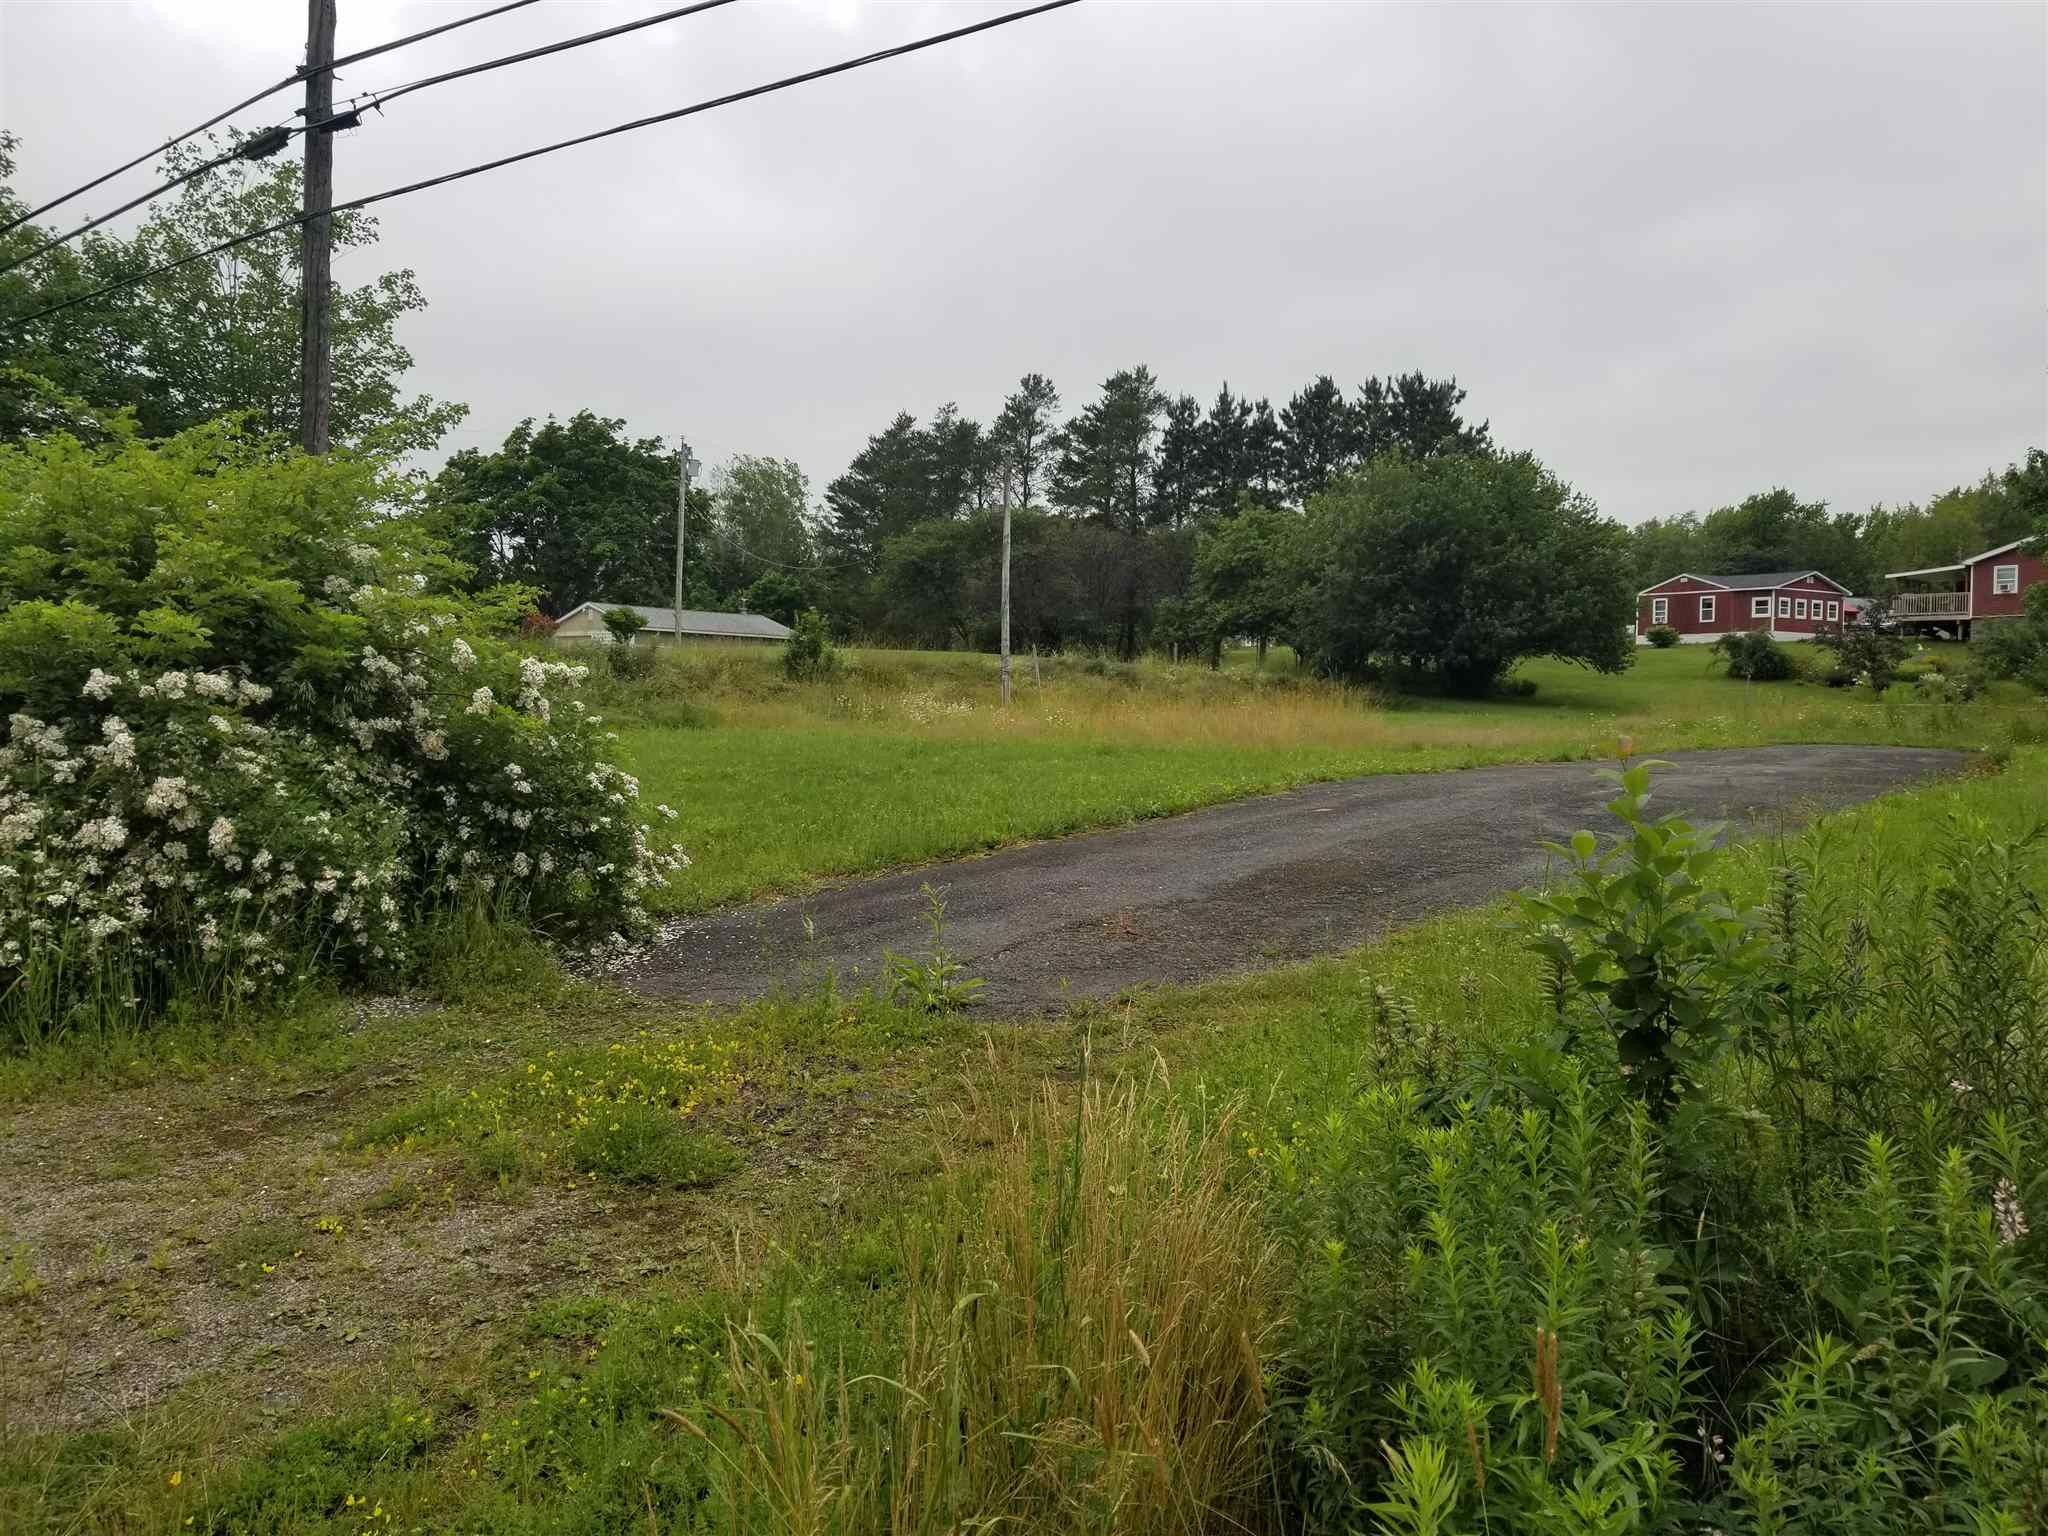 Main Photo: 6227 Highway 4 in Linacy: 108-Rural Pictou County Vacant Land for sale (Northern Region)  : MLS®# 202117205